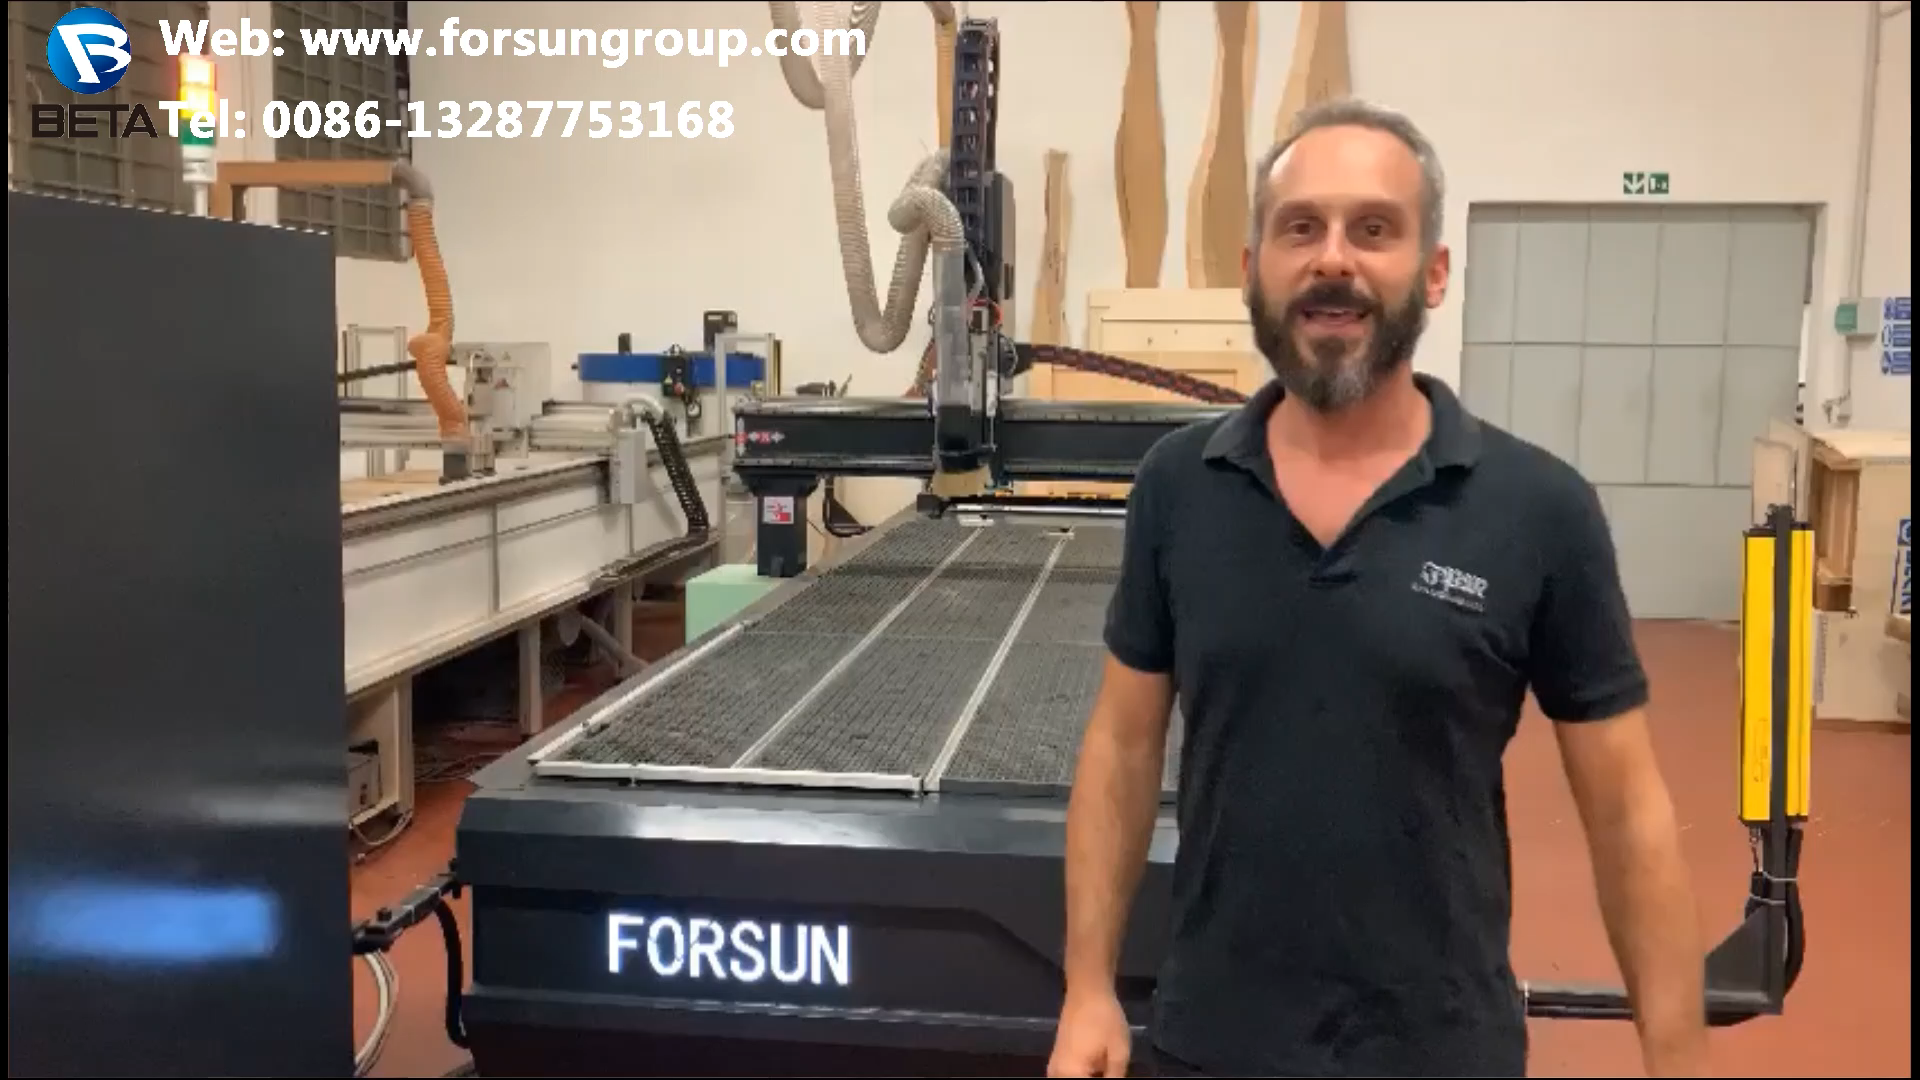 FORSUN CNC 4 spindle 4 rotary cnc router 1313 multi head wood carving